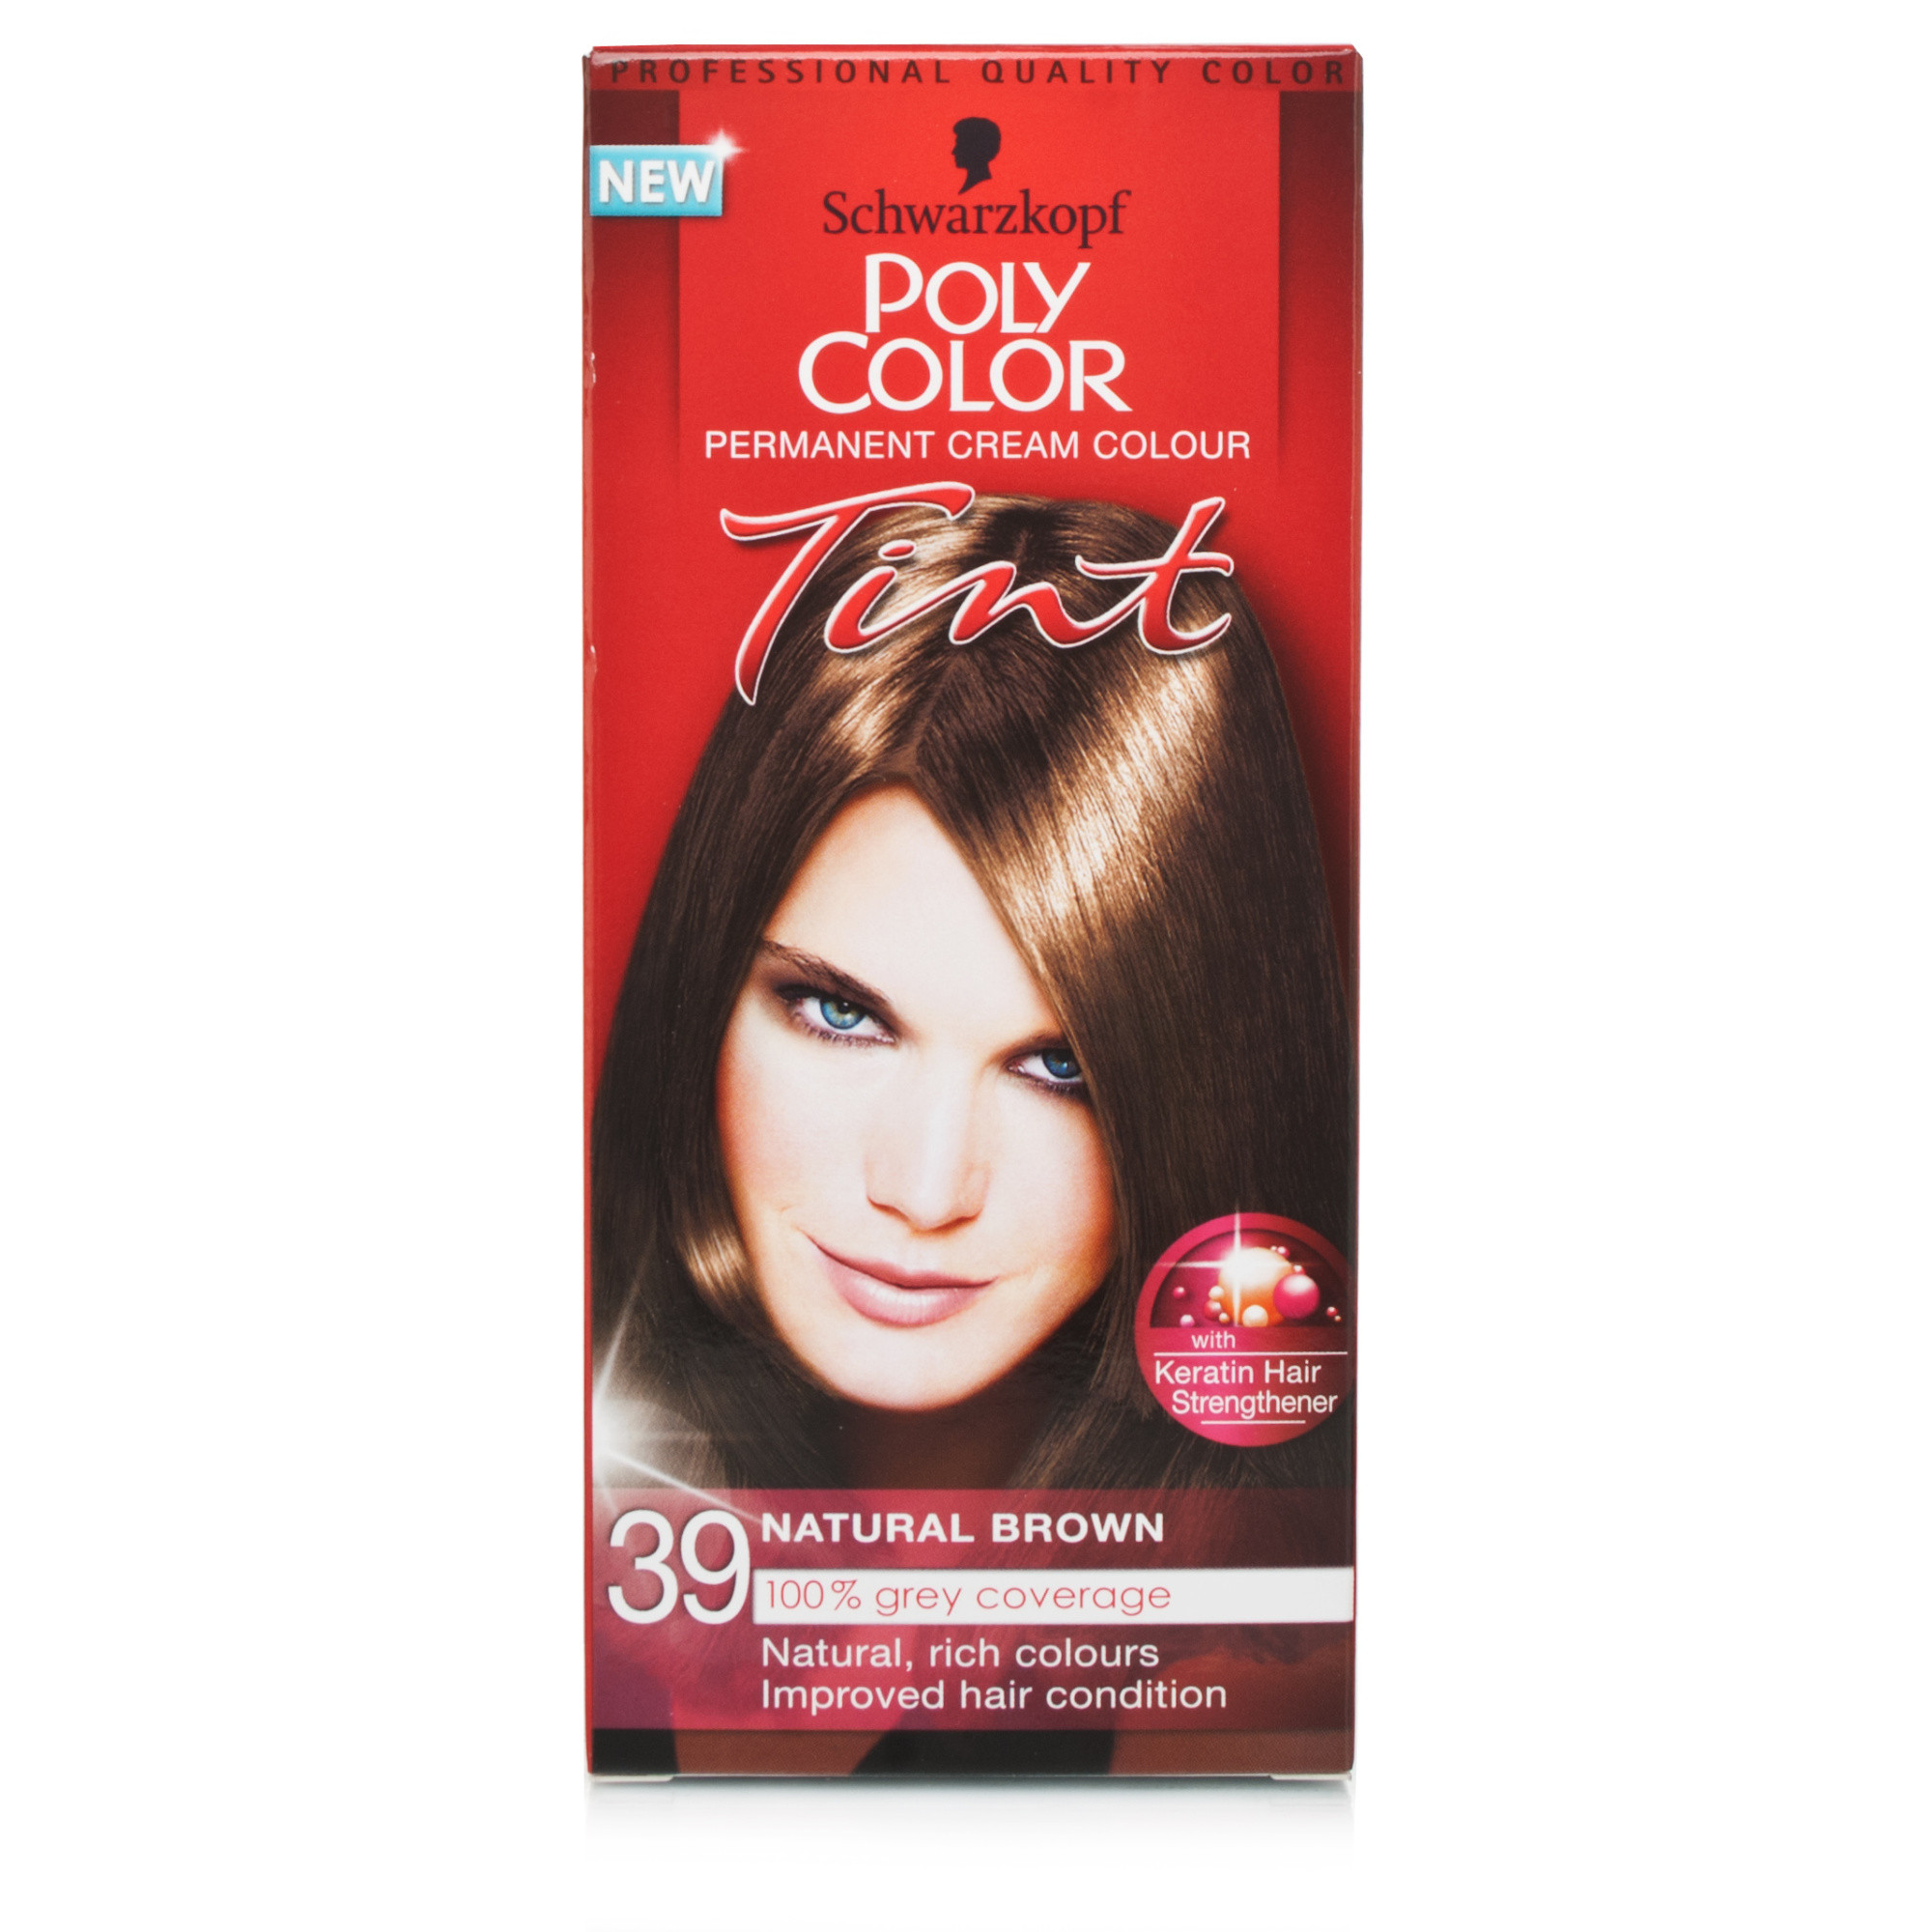 Schwarzkopf Poly Color Tint 39 Natural Brown